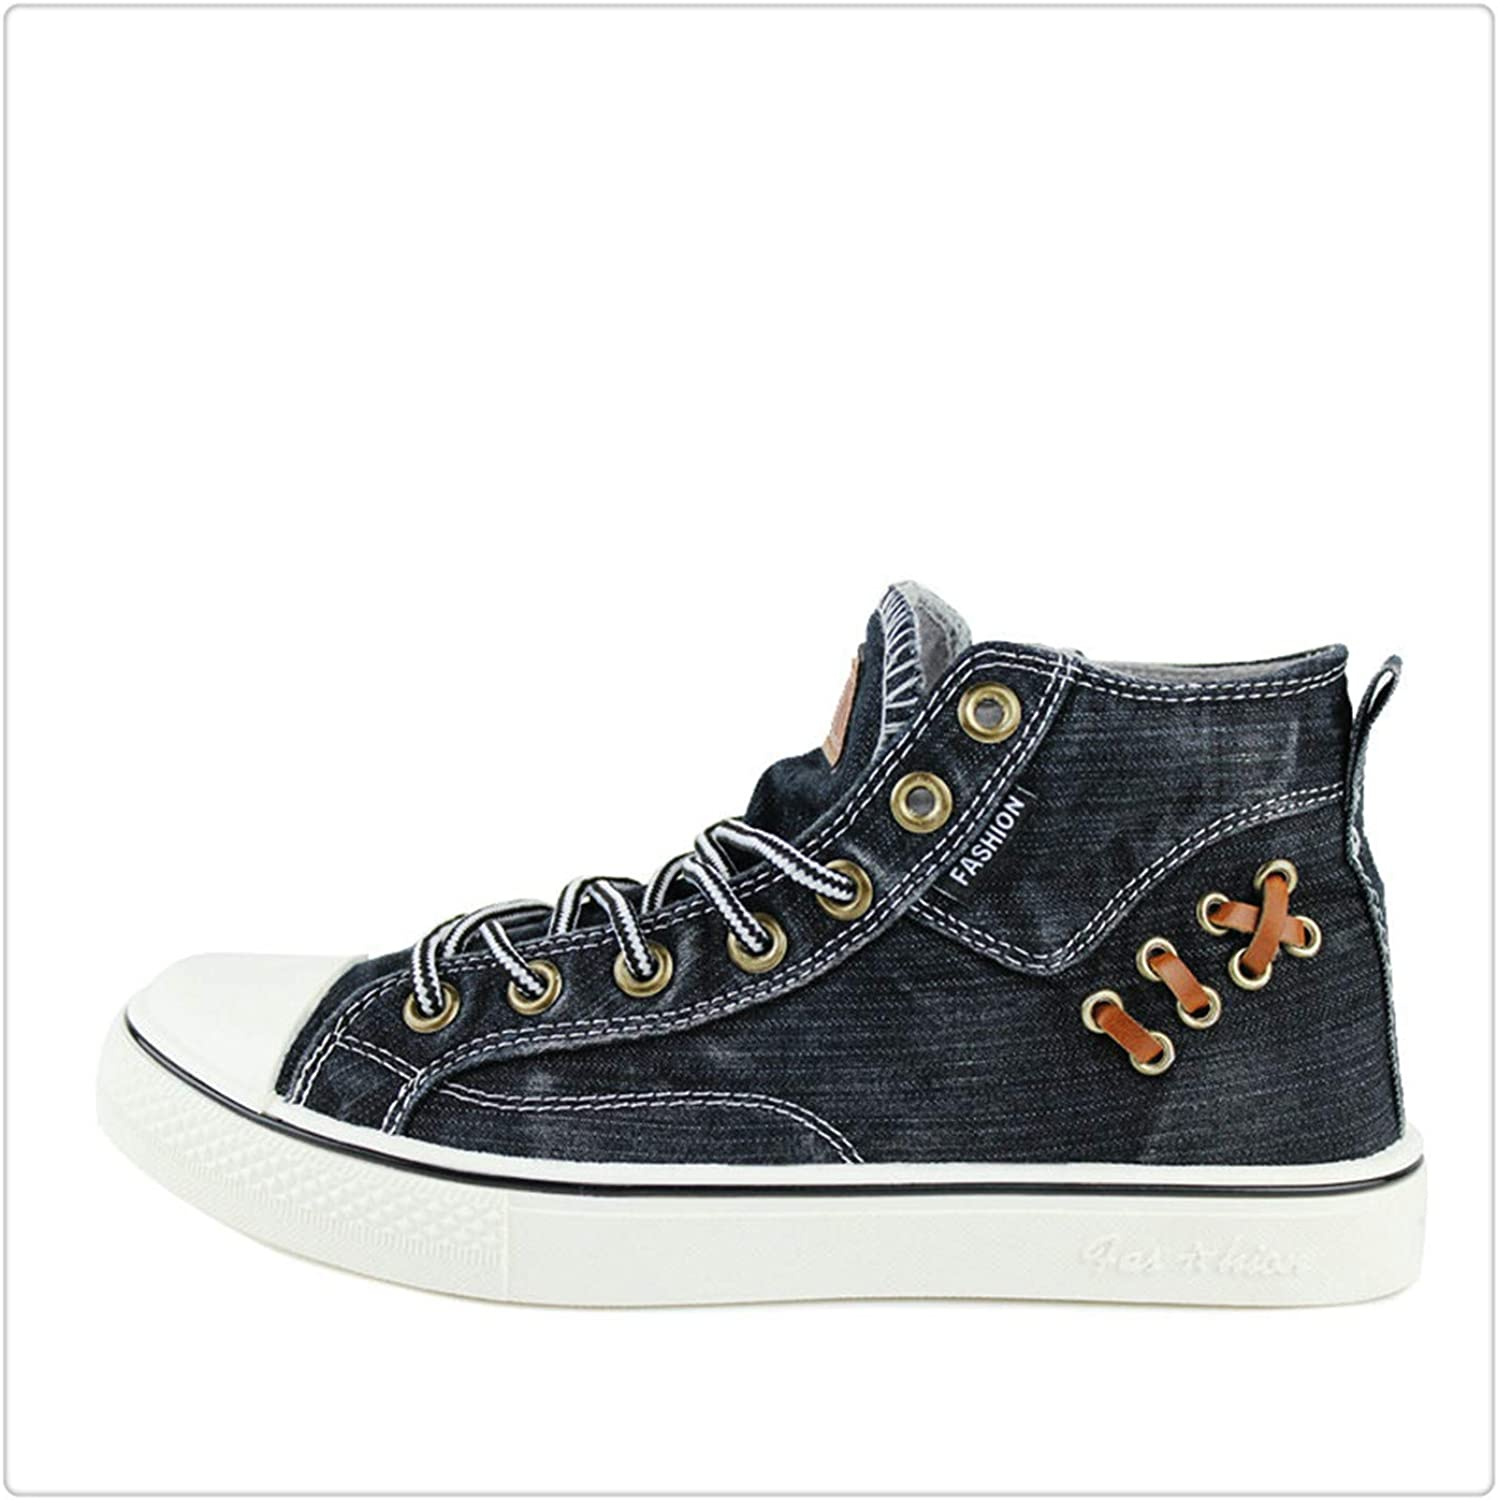 HCHBE& Women High Top Sneakers shoes Big Size 35-44 Denim Lace Up Canvas shoes